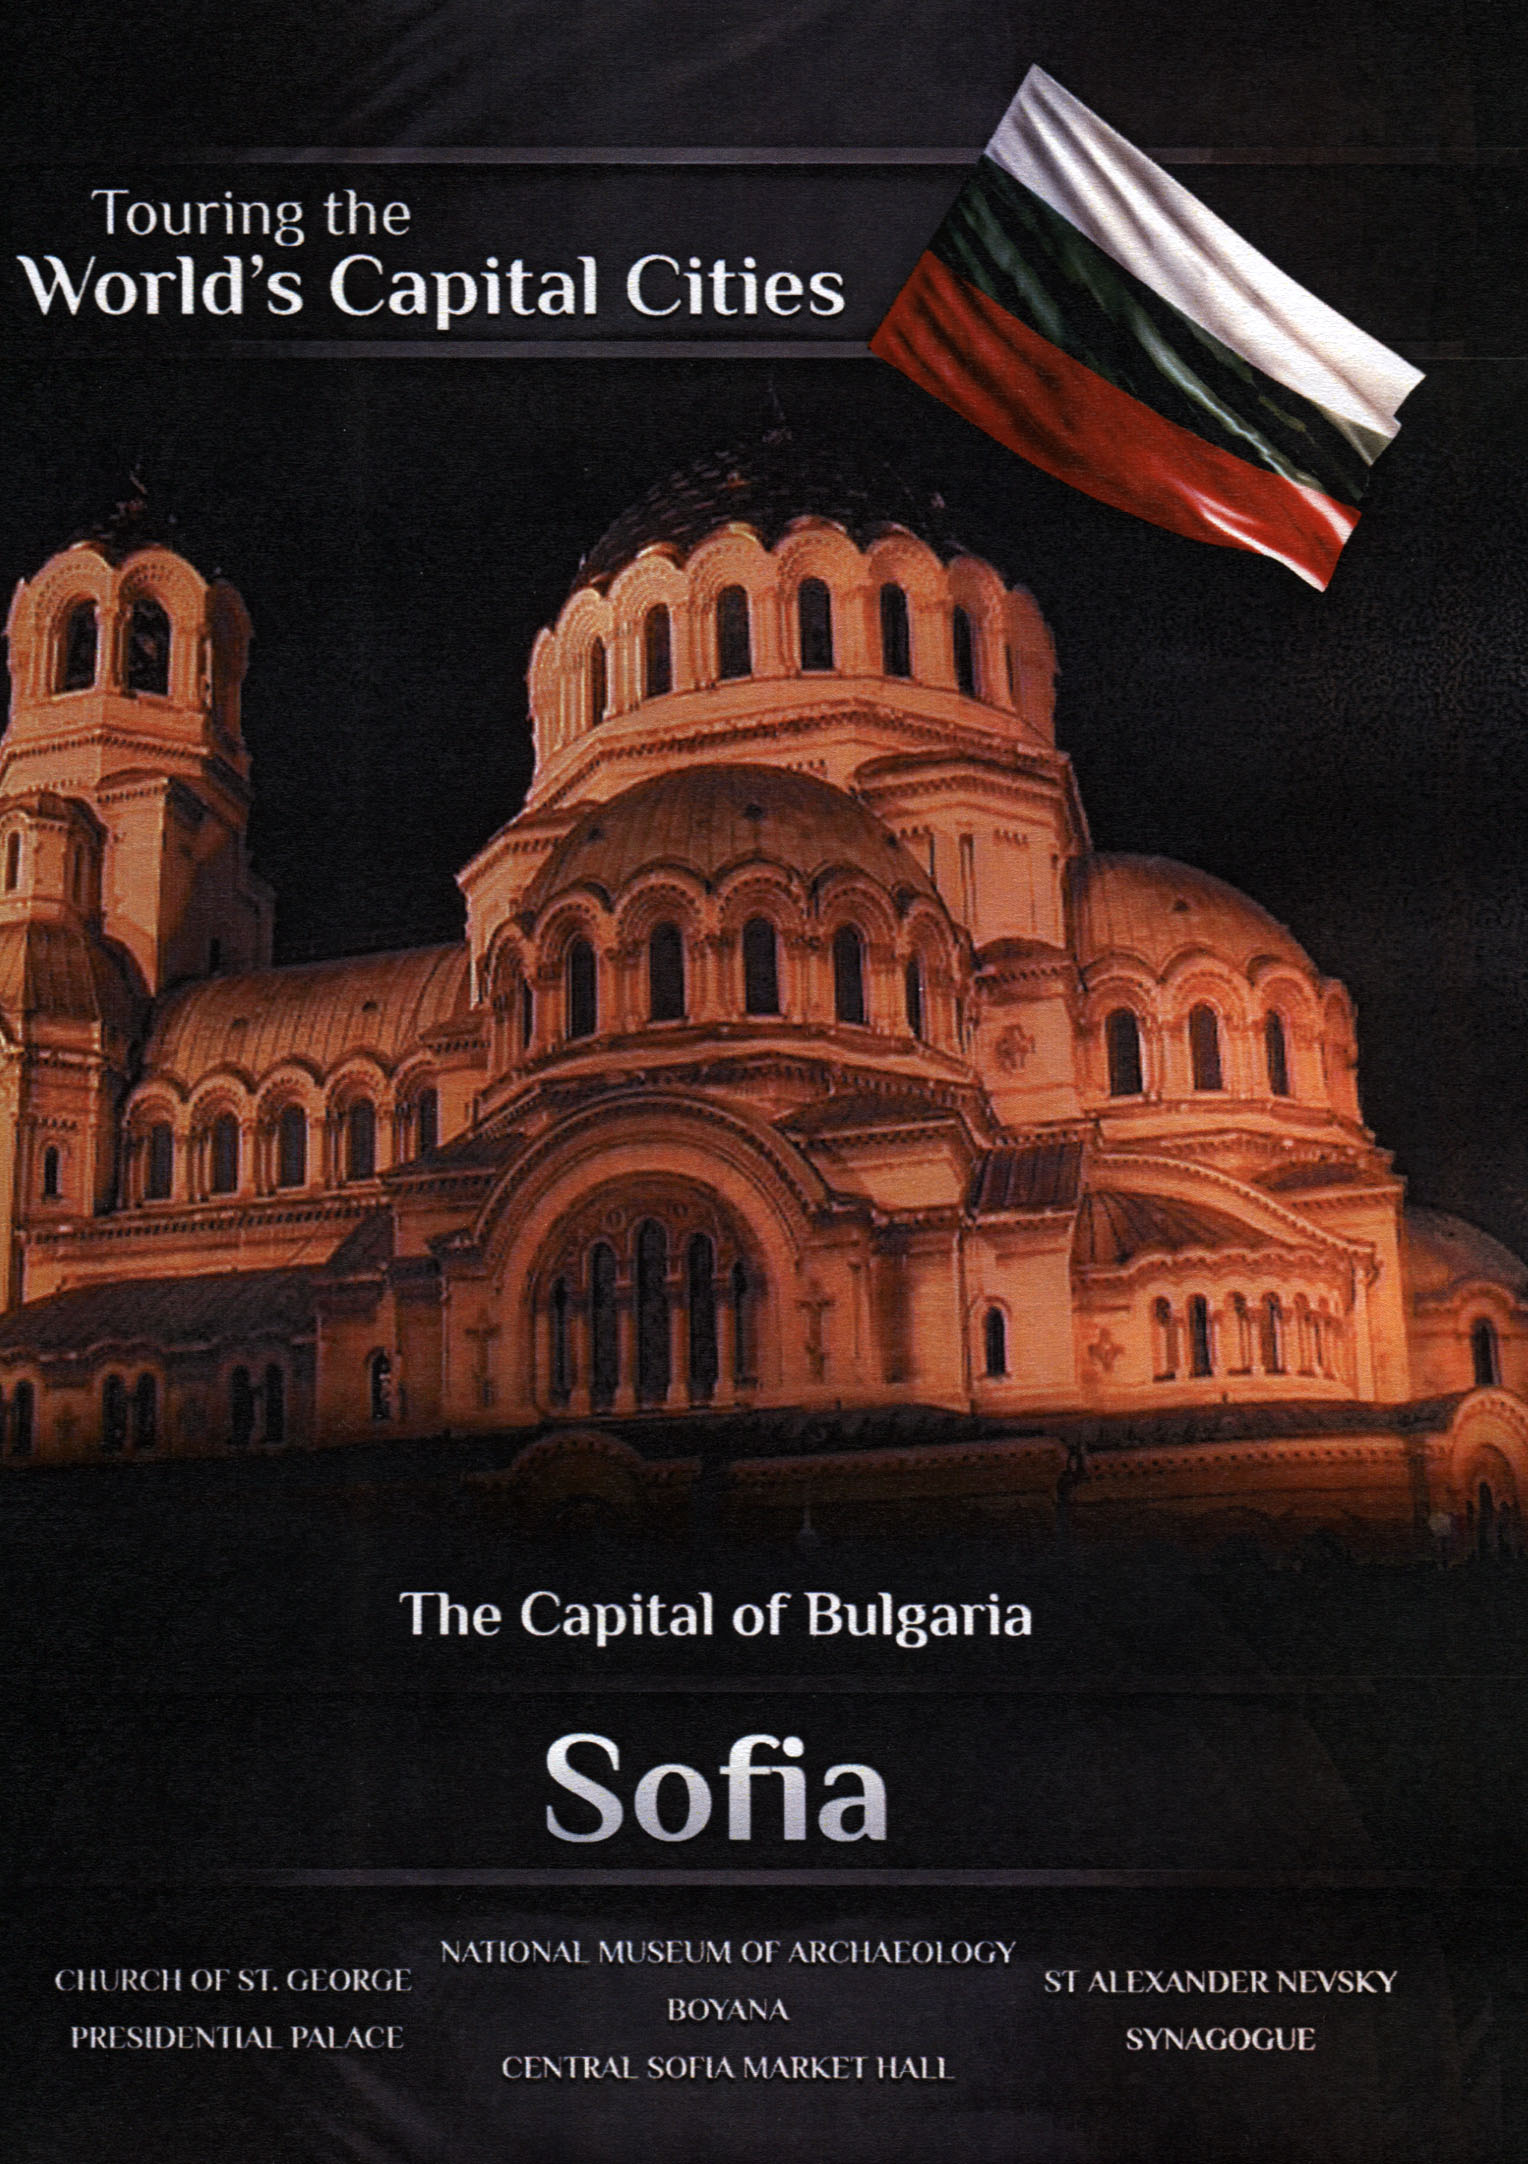 Touring the World's Capital Cities: The Capital of Bulgaria - Sofia